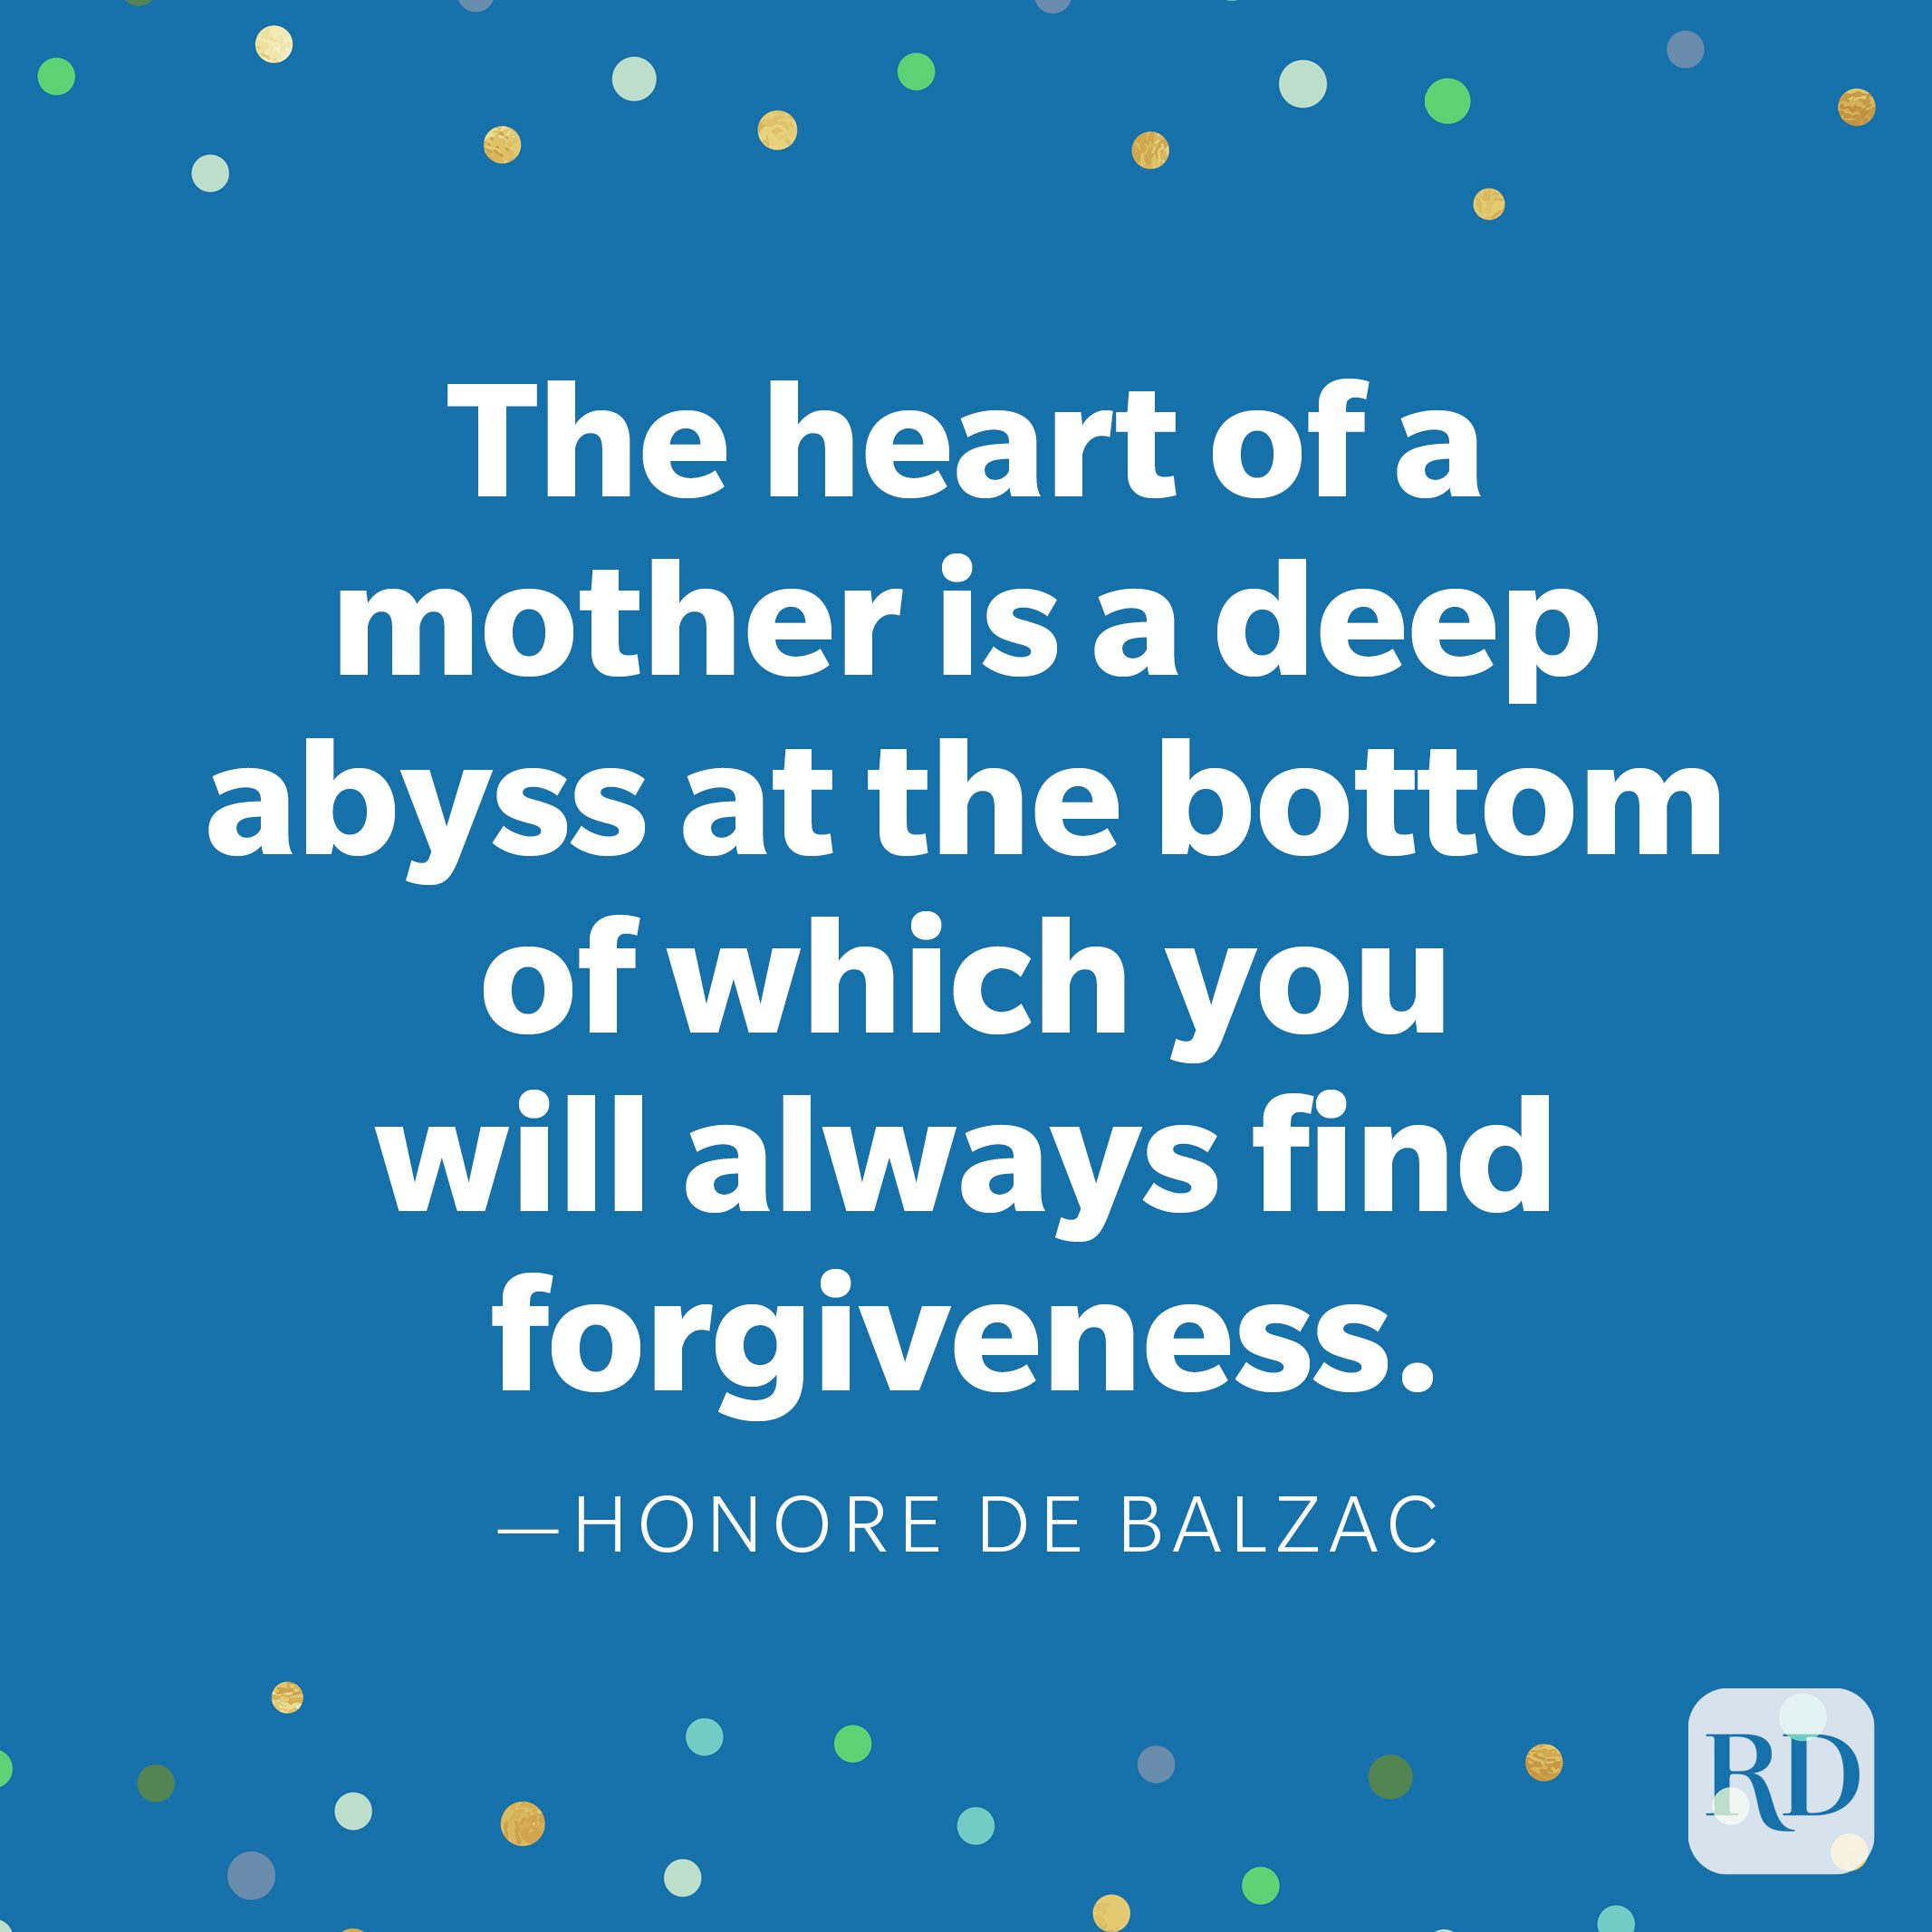 """The heart of a mother is a deep abyss at the bottom of which you will always find forgiveness."" —Honore de Balzac."